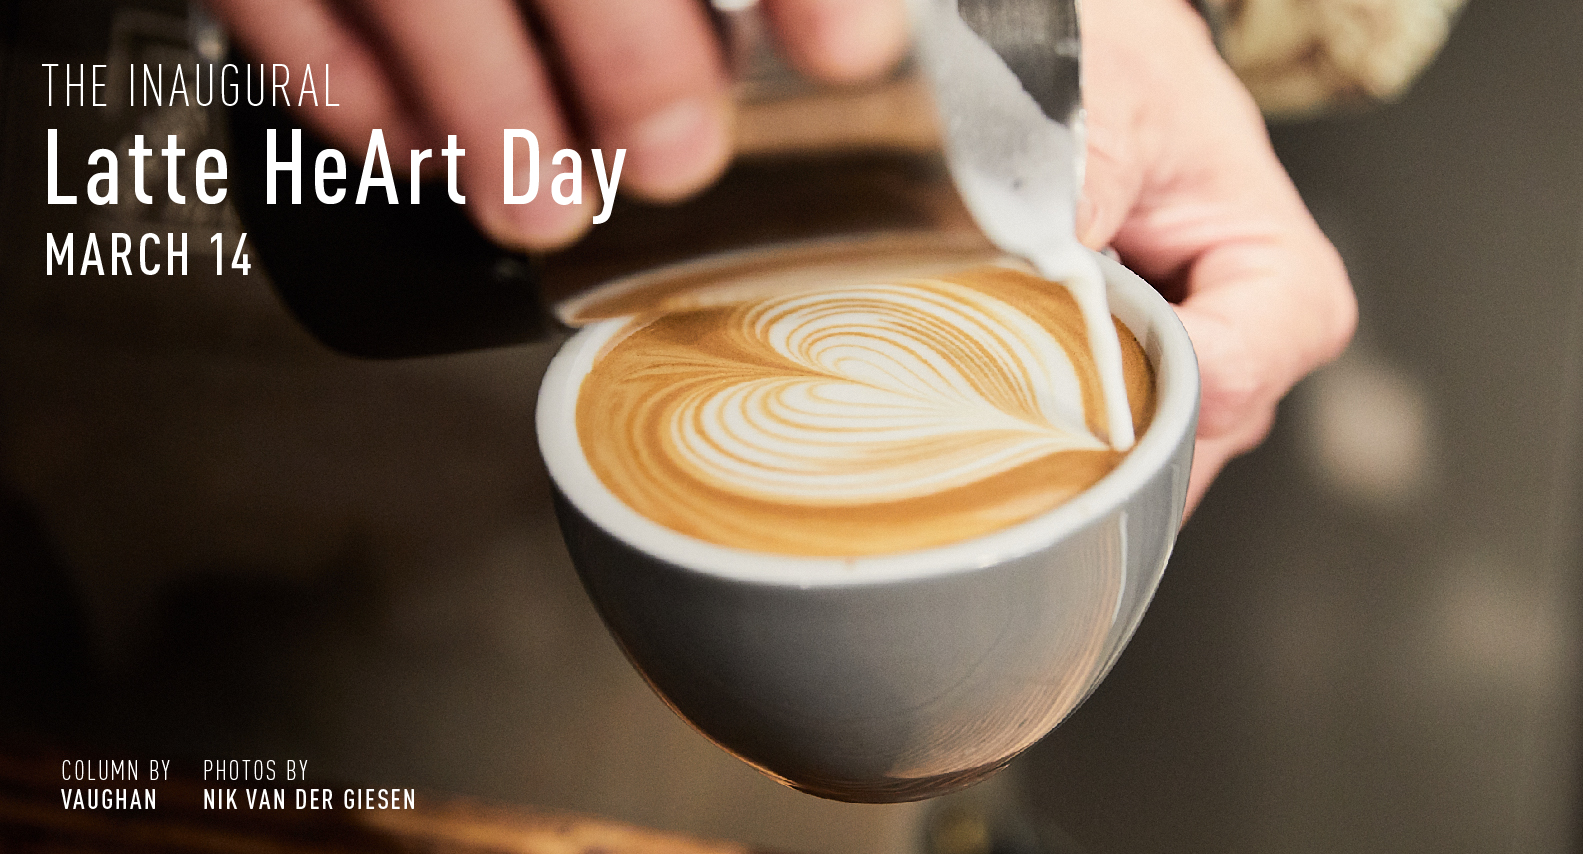 THE INAUGURAL Latte HeArt Day